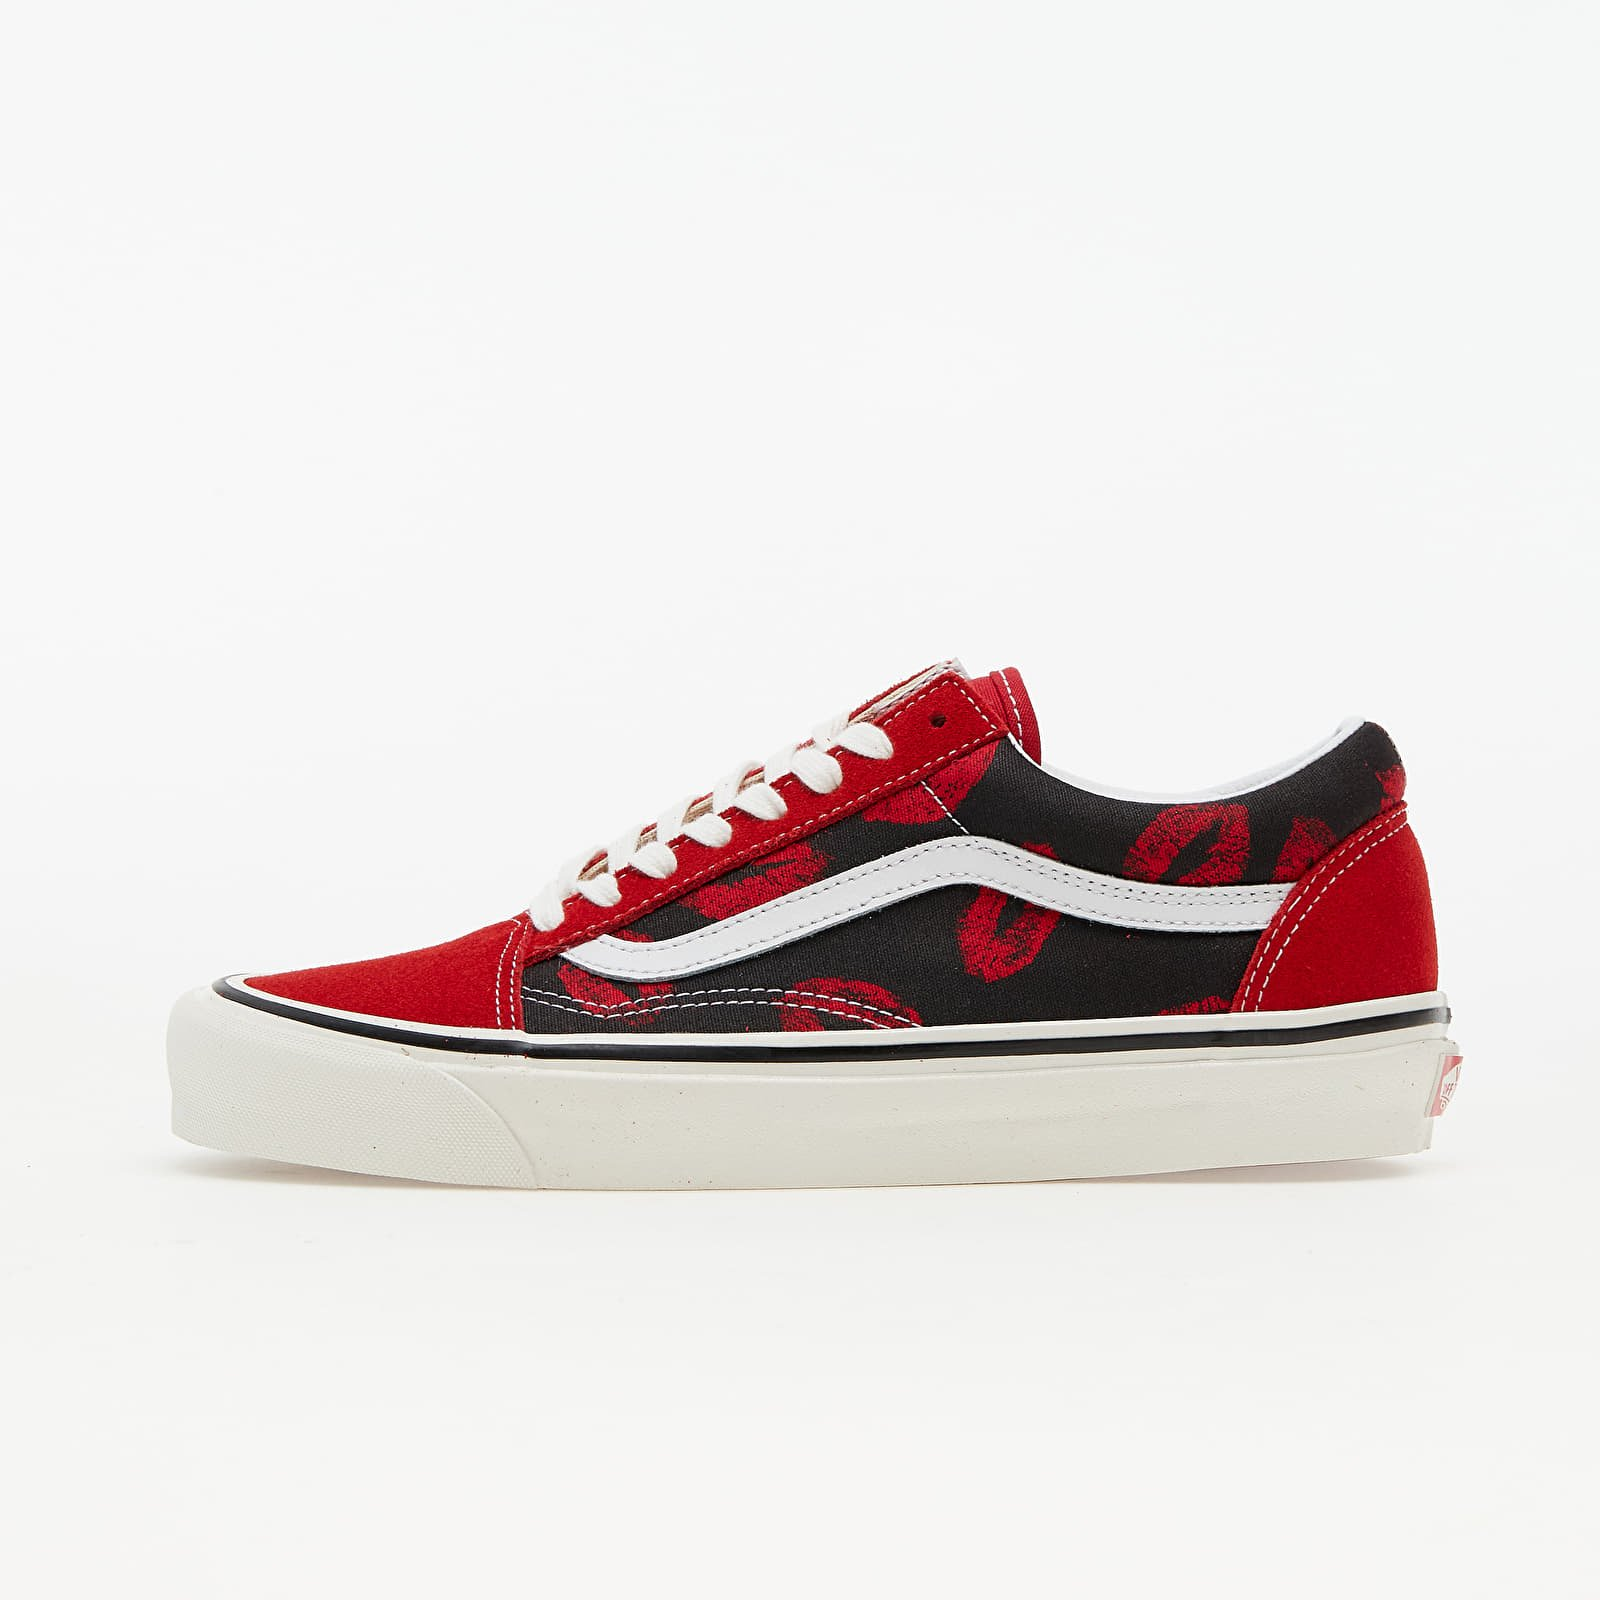 Vans Old Skool 36 DX (Anaheim Factory) Ogrdoghtlps EUR 38